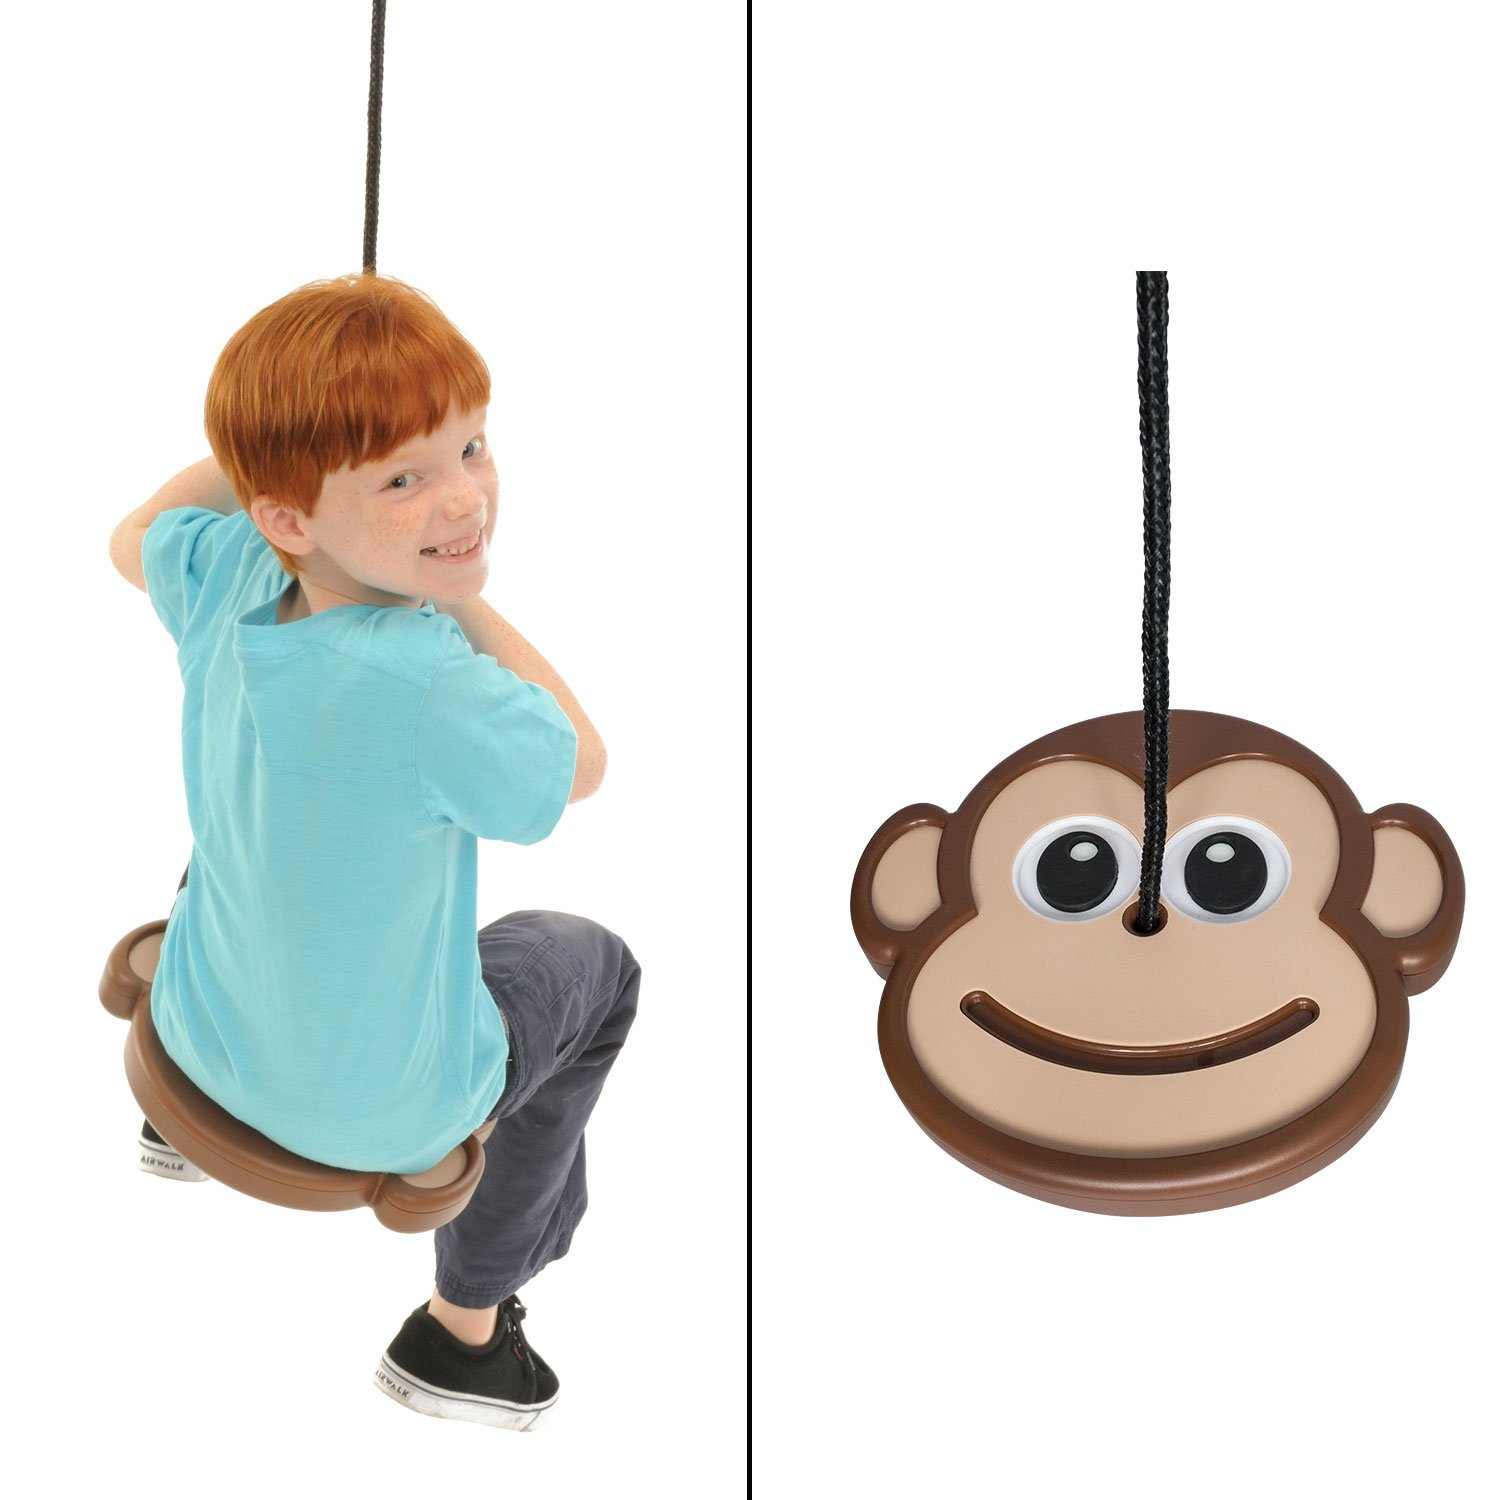 Swinging Monkey Products Monkey Disc Swing – Patent Pending, Unique Design, Tree Swing, Outdoor Play